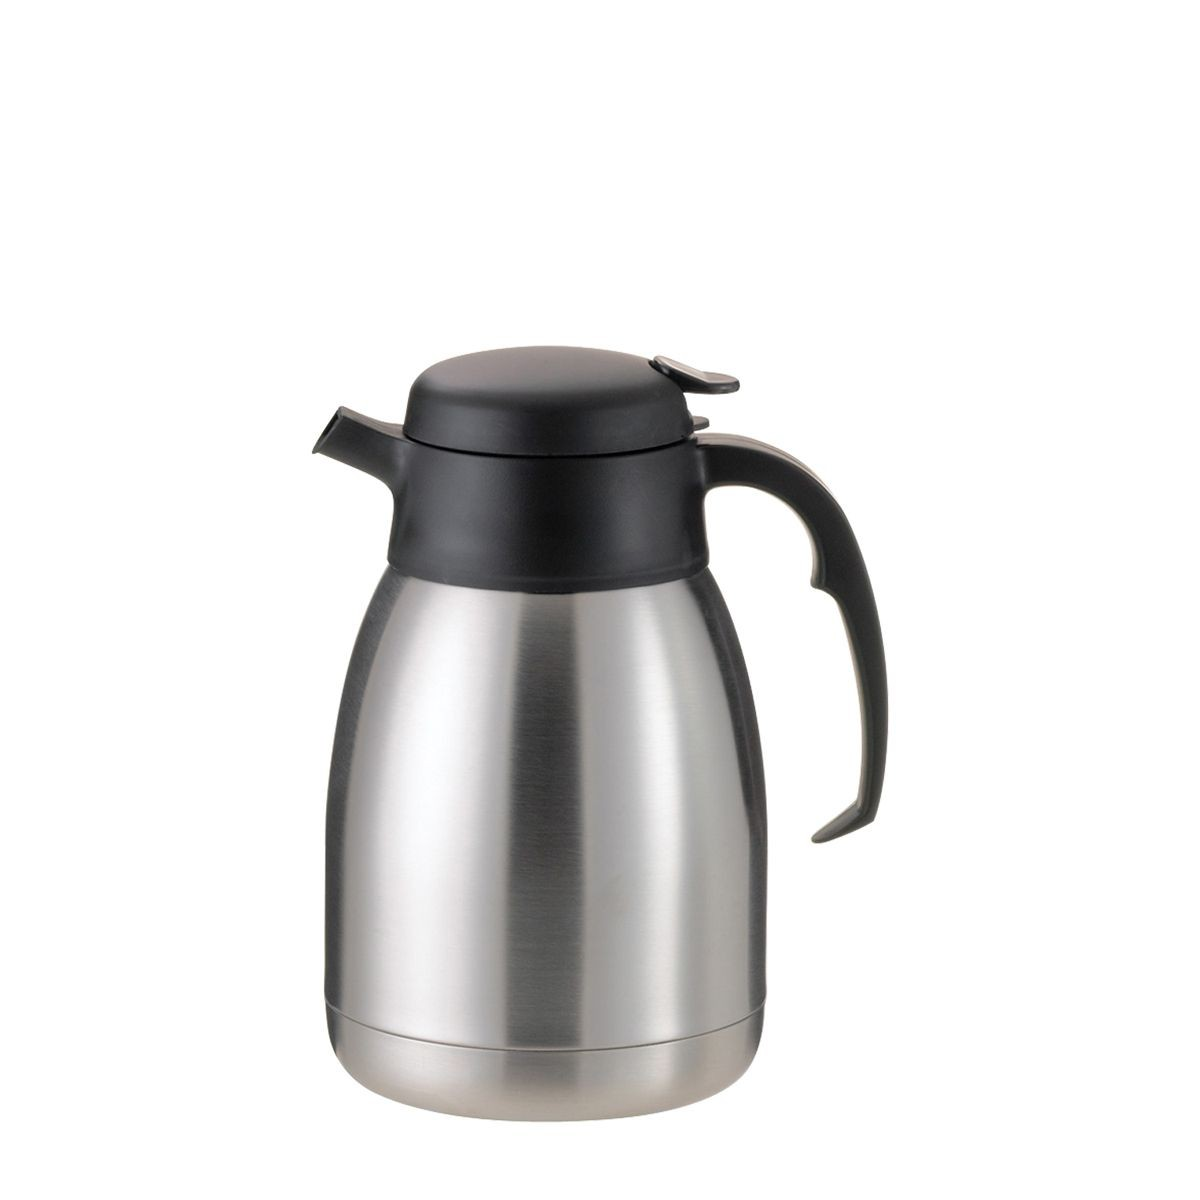 Service Ideas FVP15 Steelvac Insulated Stainless Steel Server 1.5 Liter